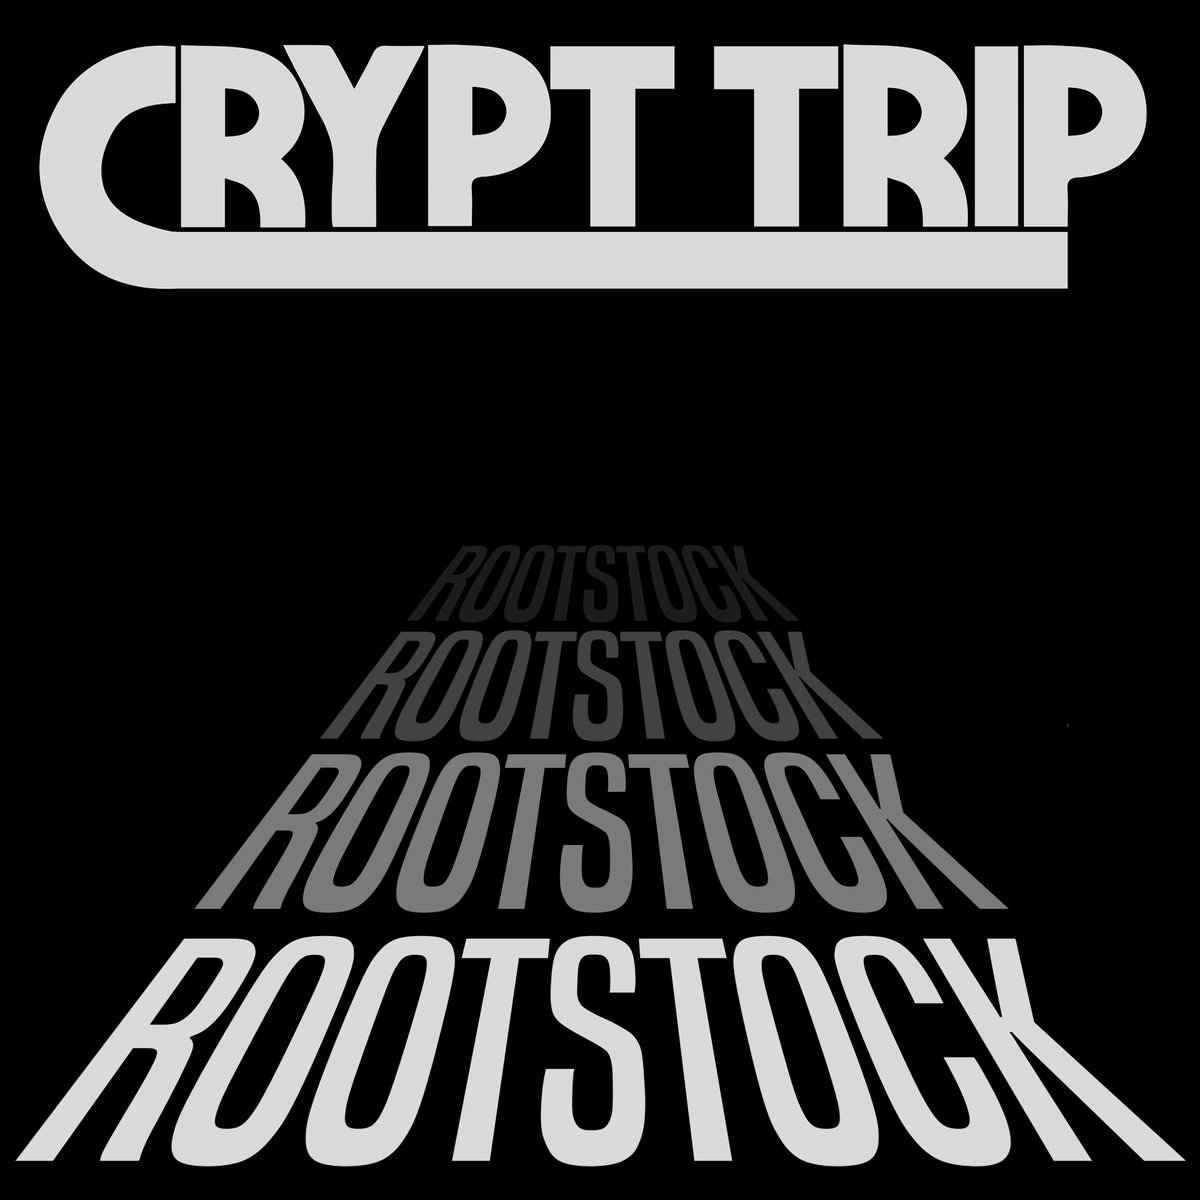 crypt trip rootstock